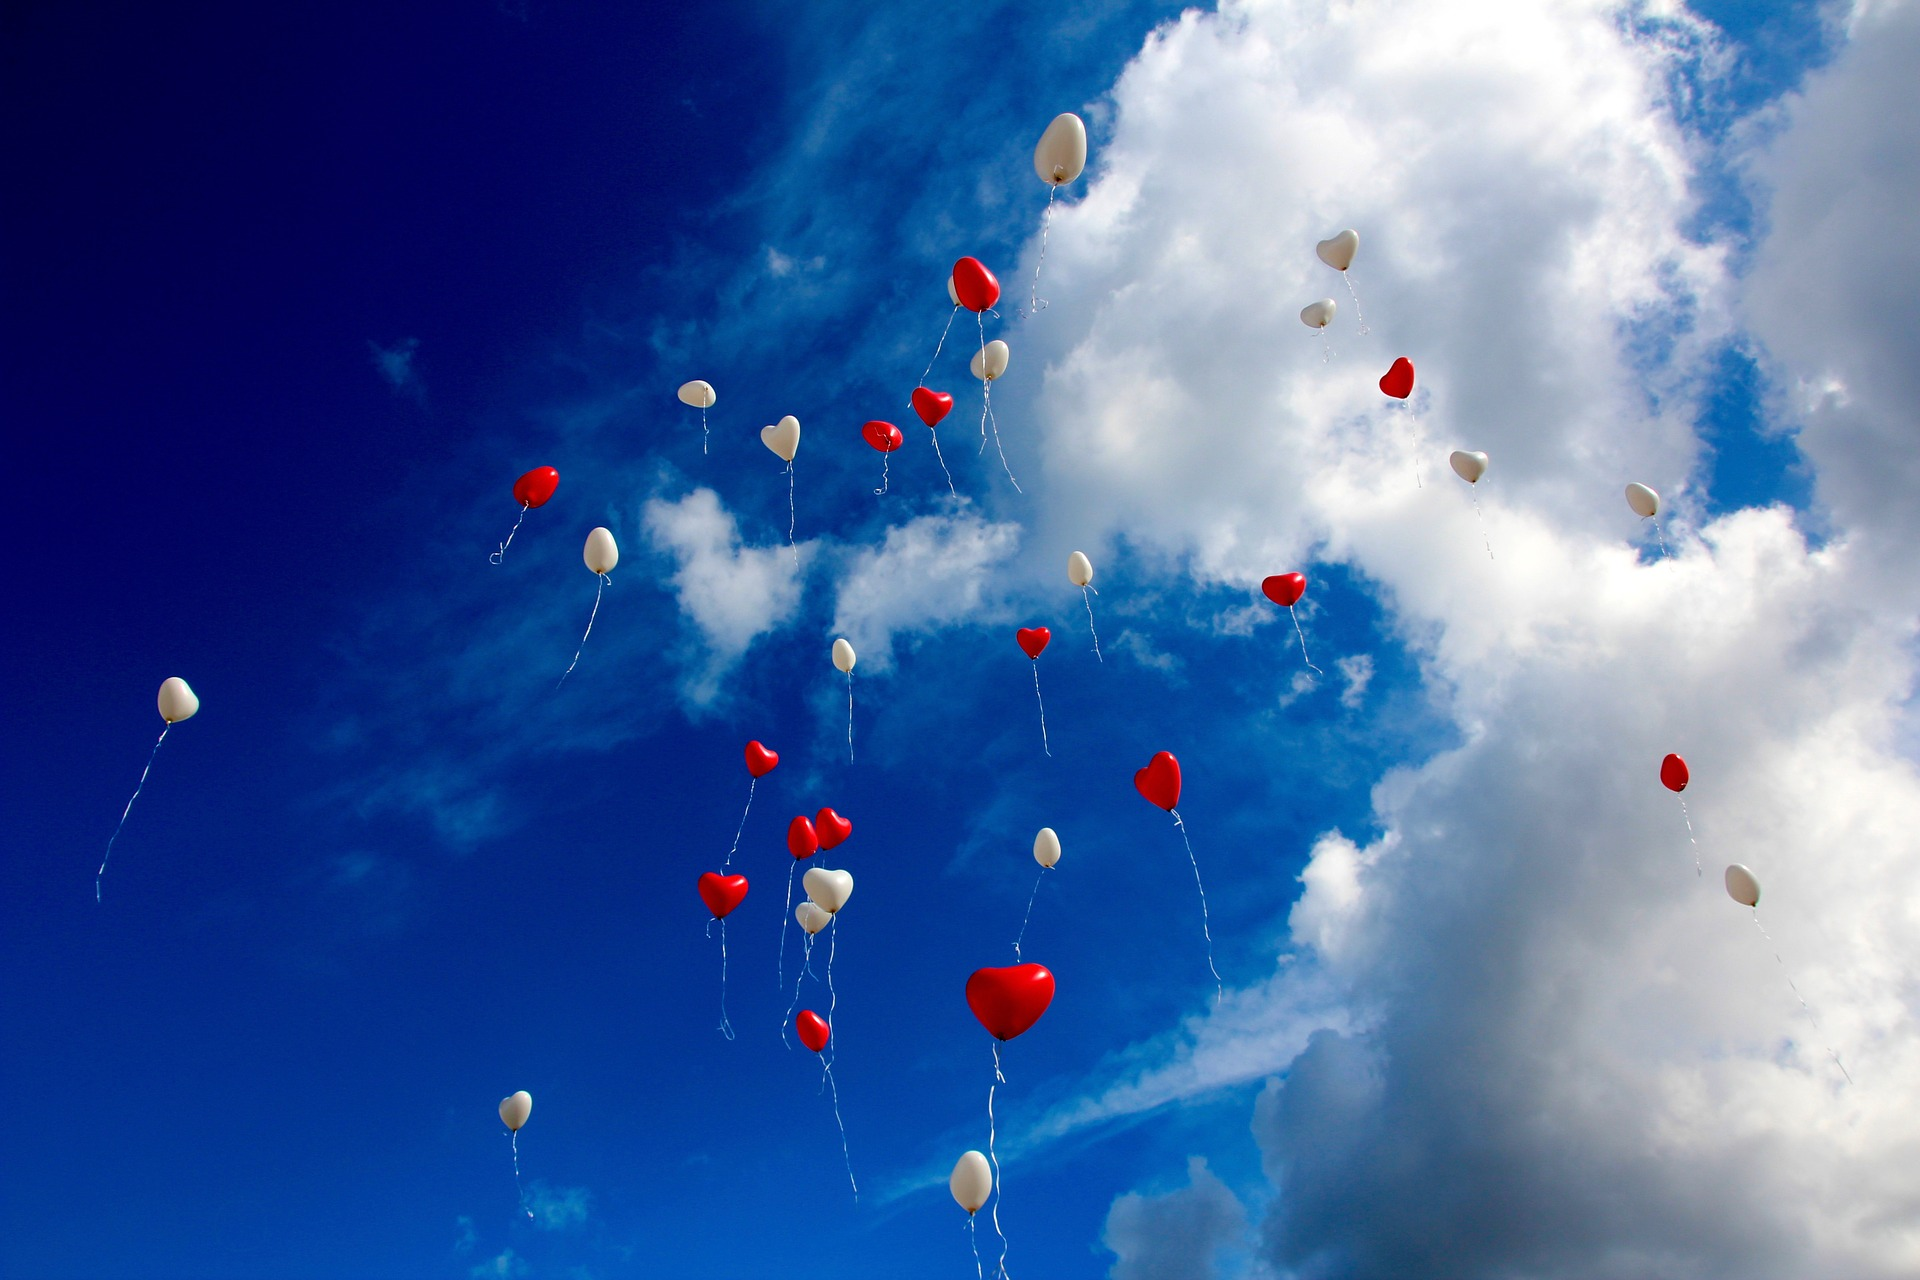 Dozens of red and white heart-shaped balloons floating through bright blue sky